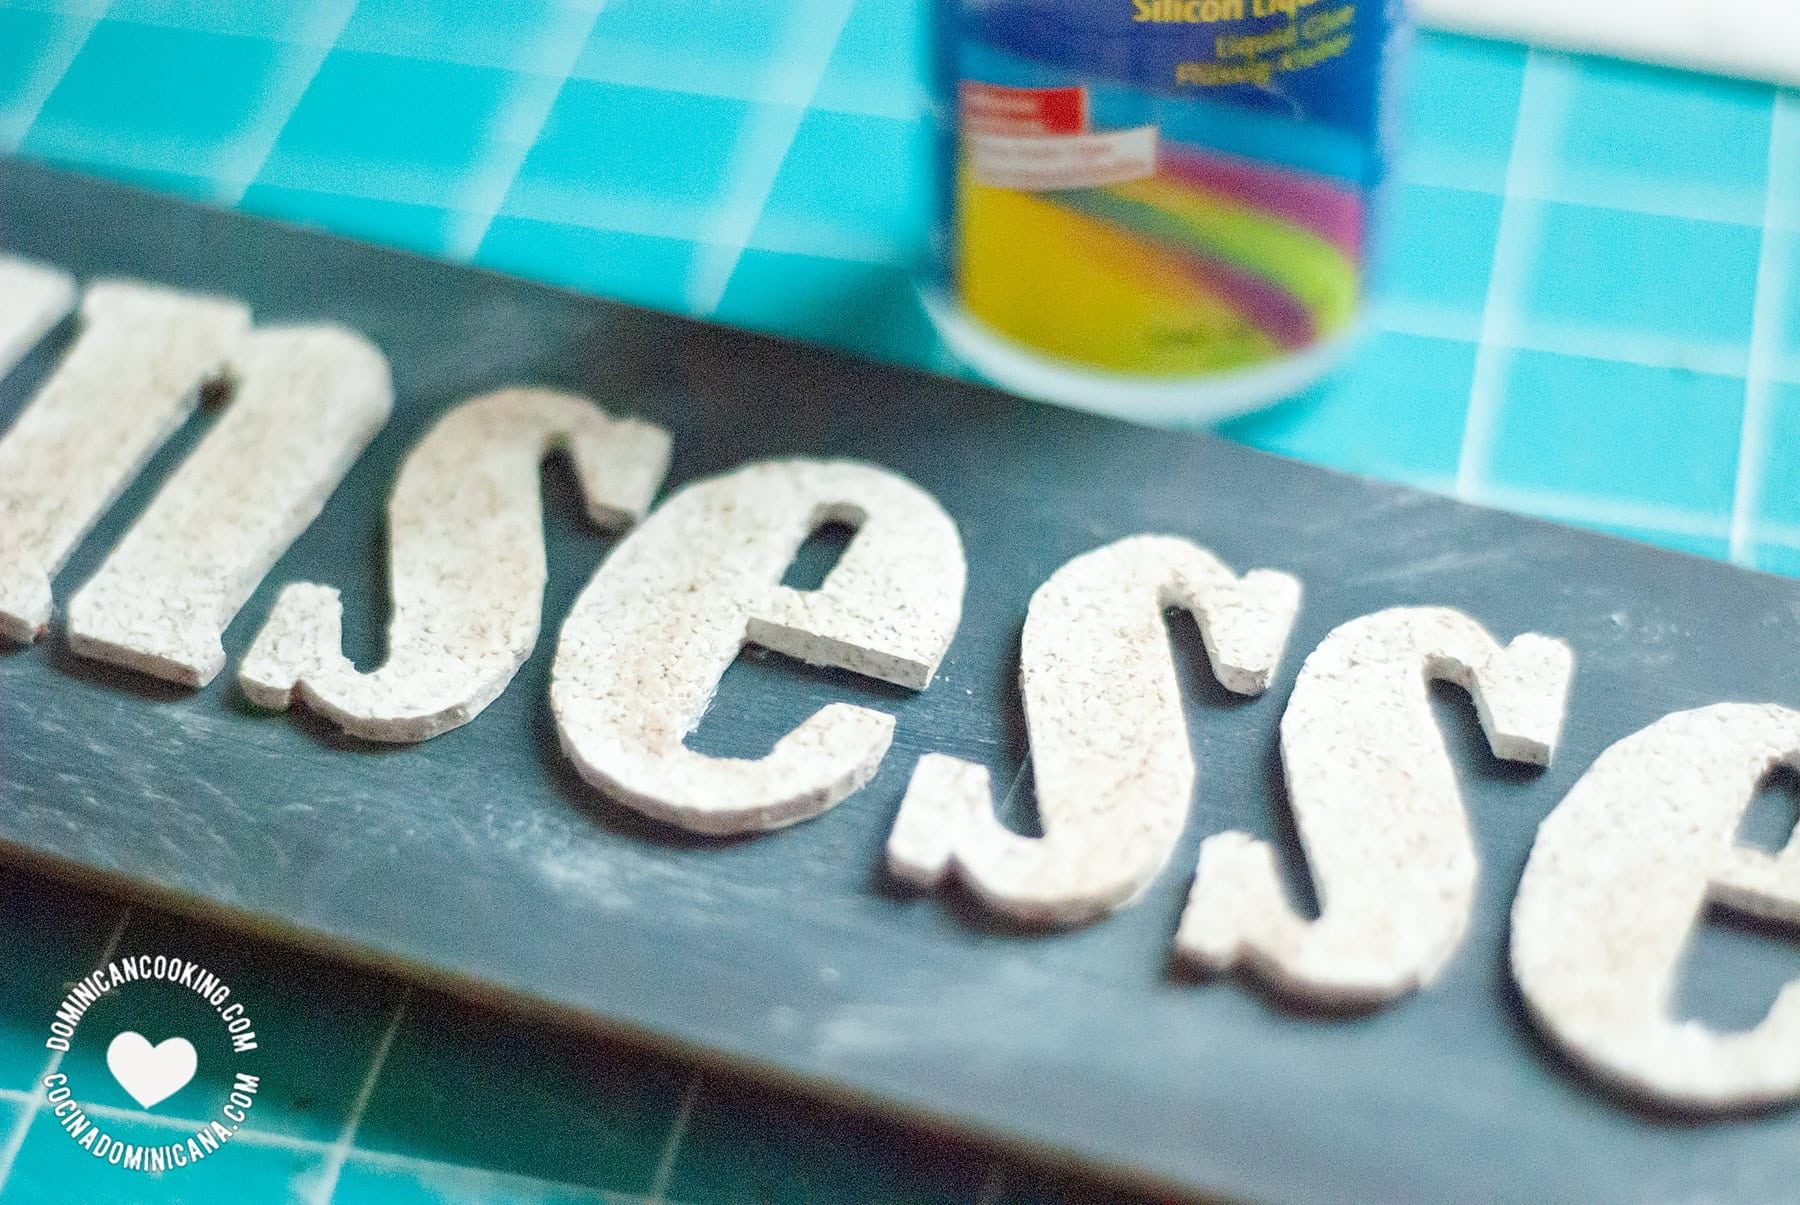 Glueing the letters.